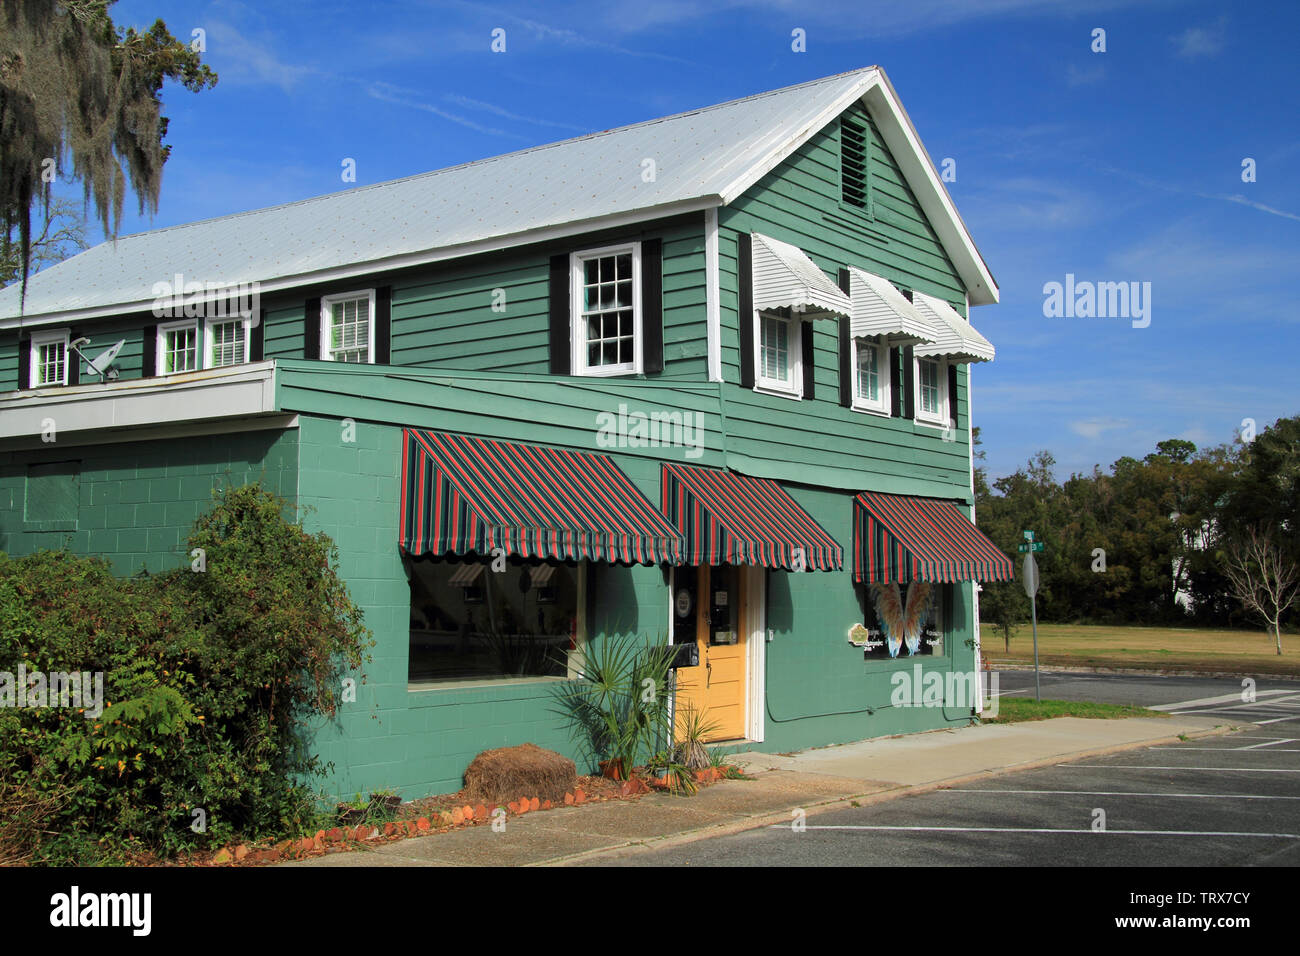 The St. Marys Historic District, located in the state of Georgia, is notable for its significant collection of old homes and businesses Stock Photo